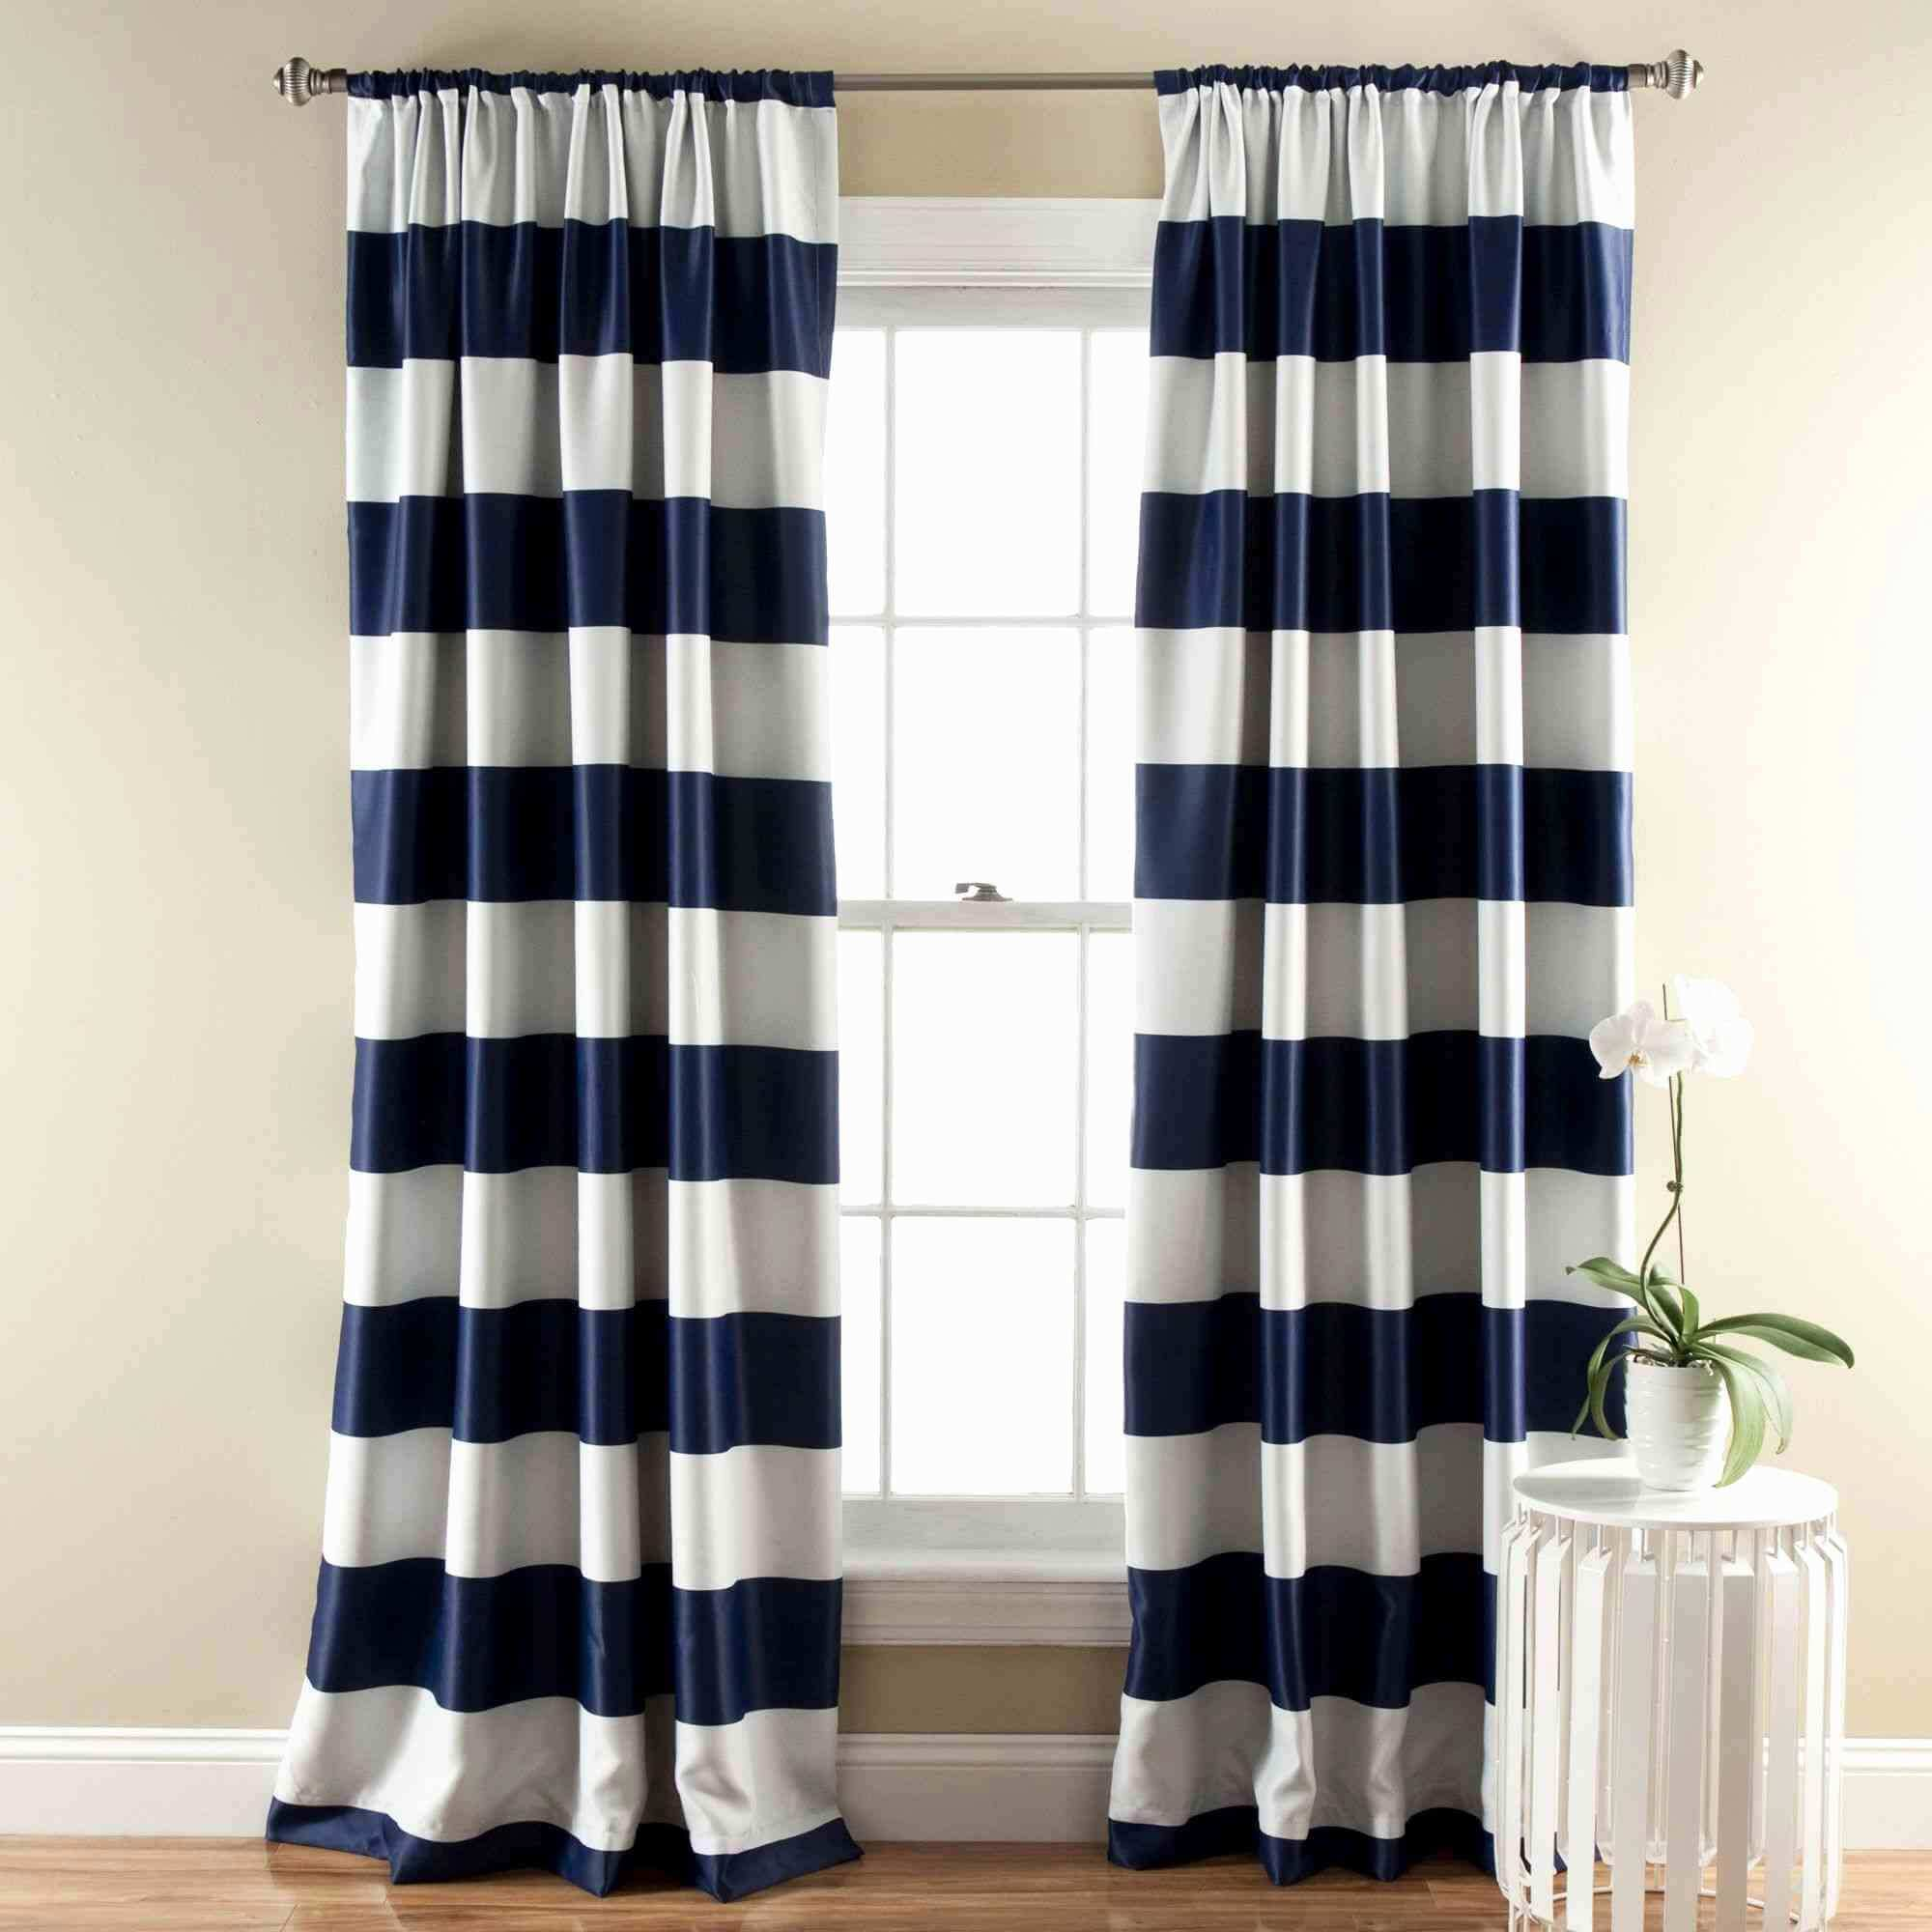 Best Curtains For Living Room (2)